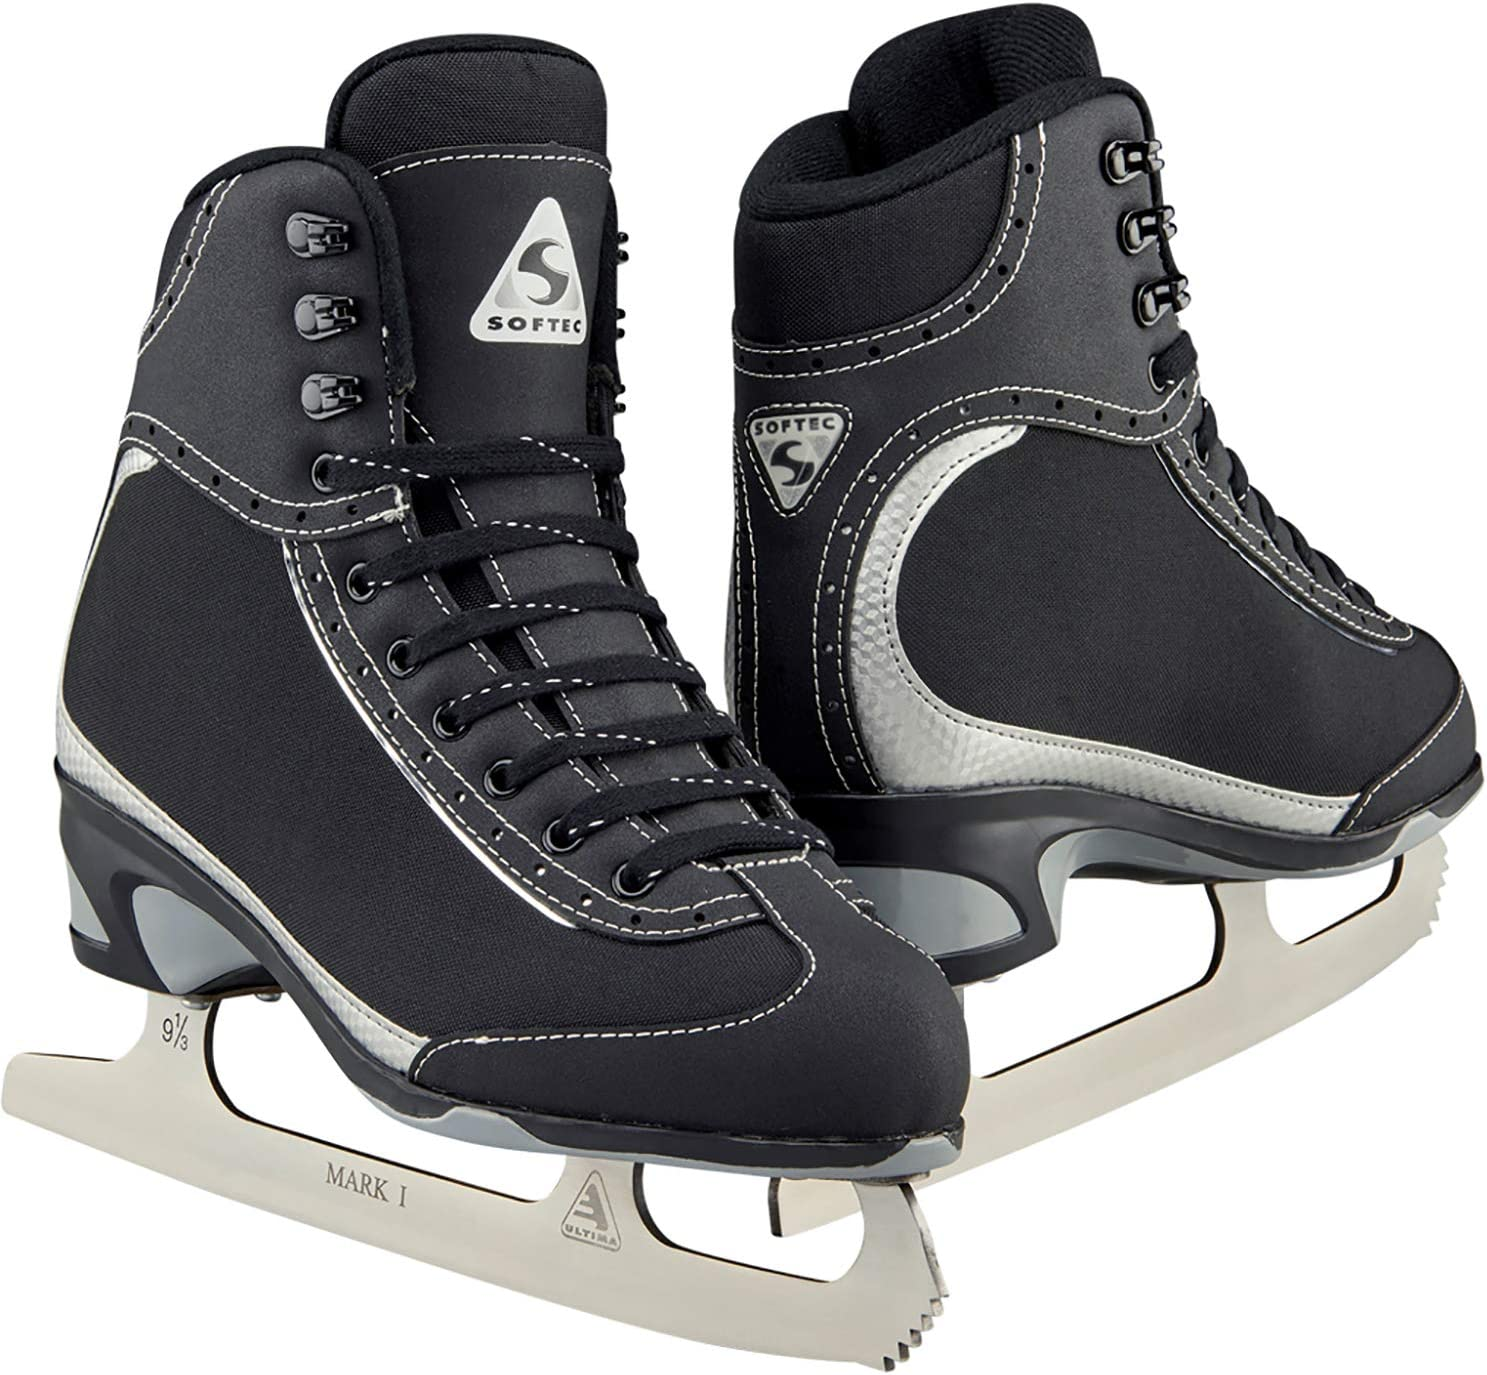 Jackson Ultima Softec Vista ST3200 Figure Ice Skates for Women Color Black, Size Adult 8